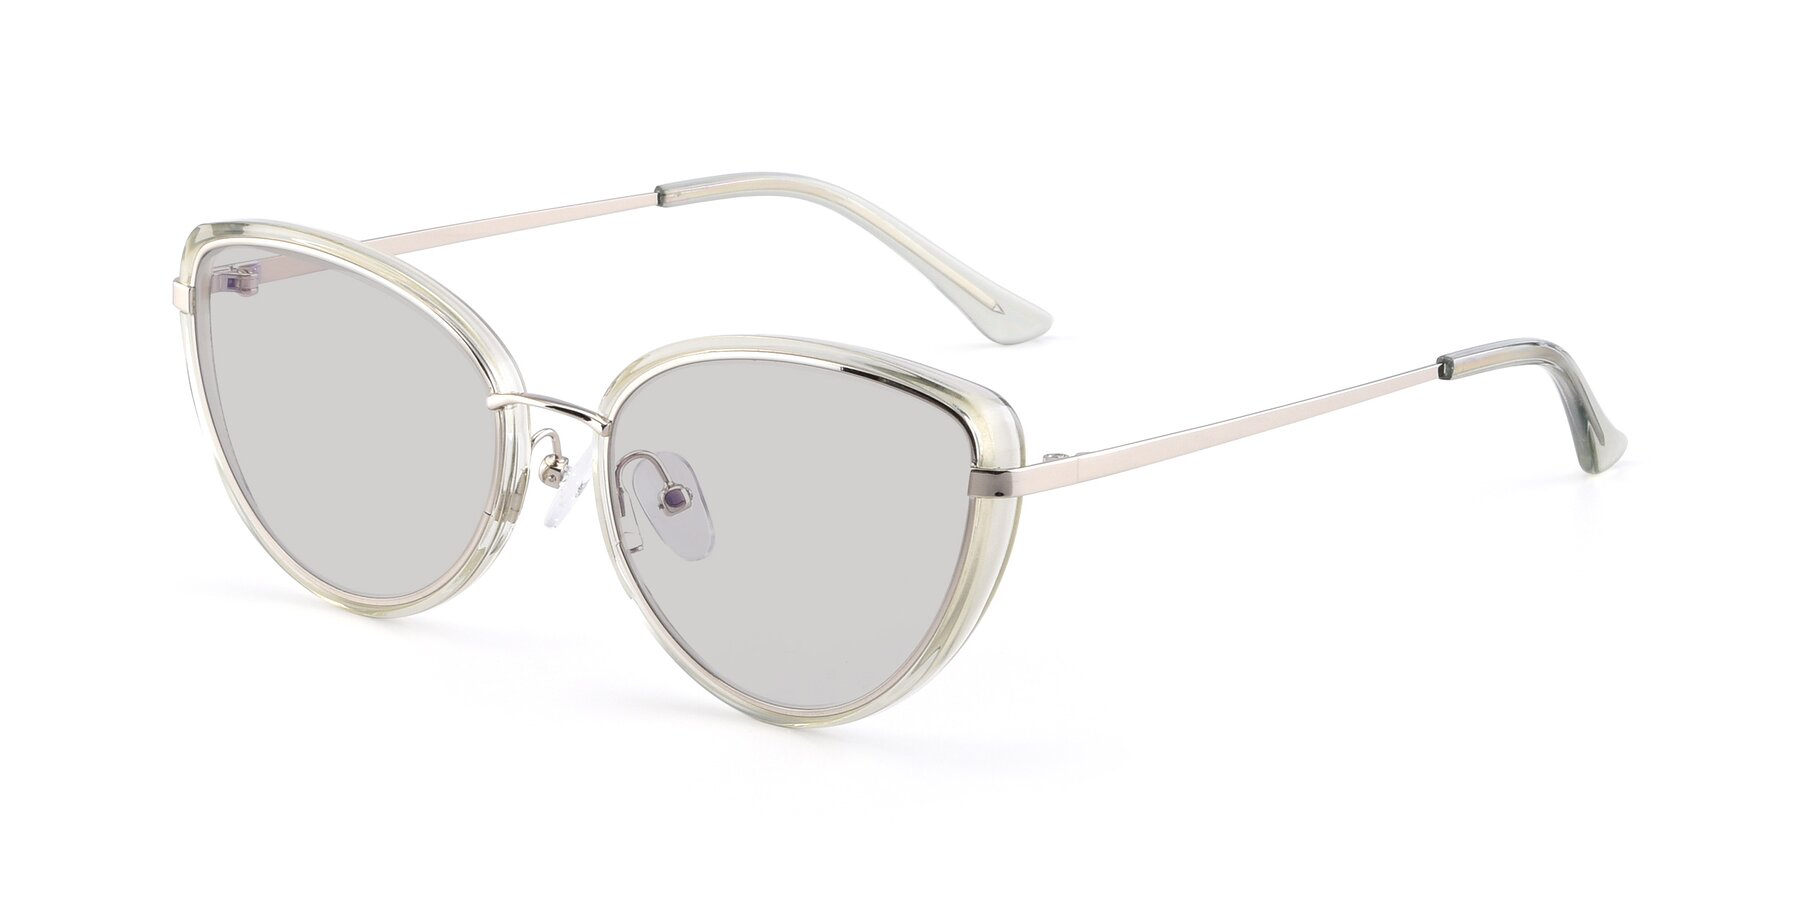 Angle of 17706 in Transparent Green-Silver with Light Gray Tinted Lenses